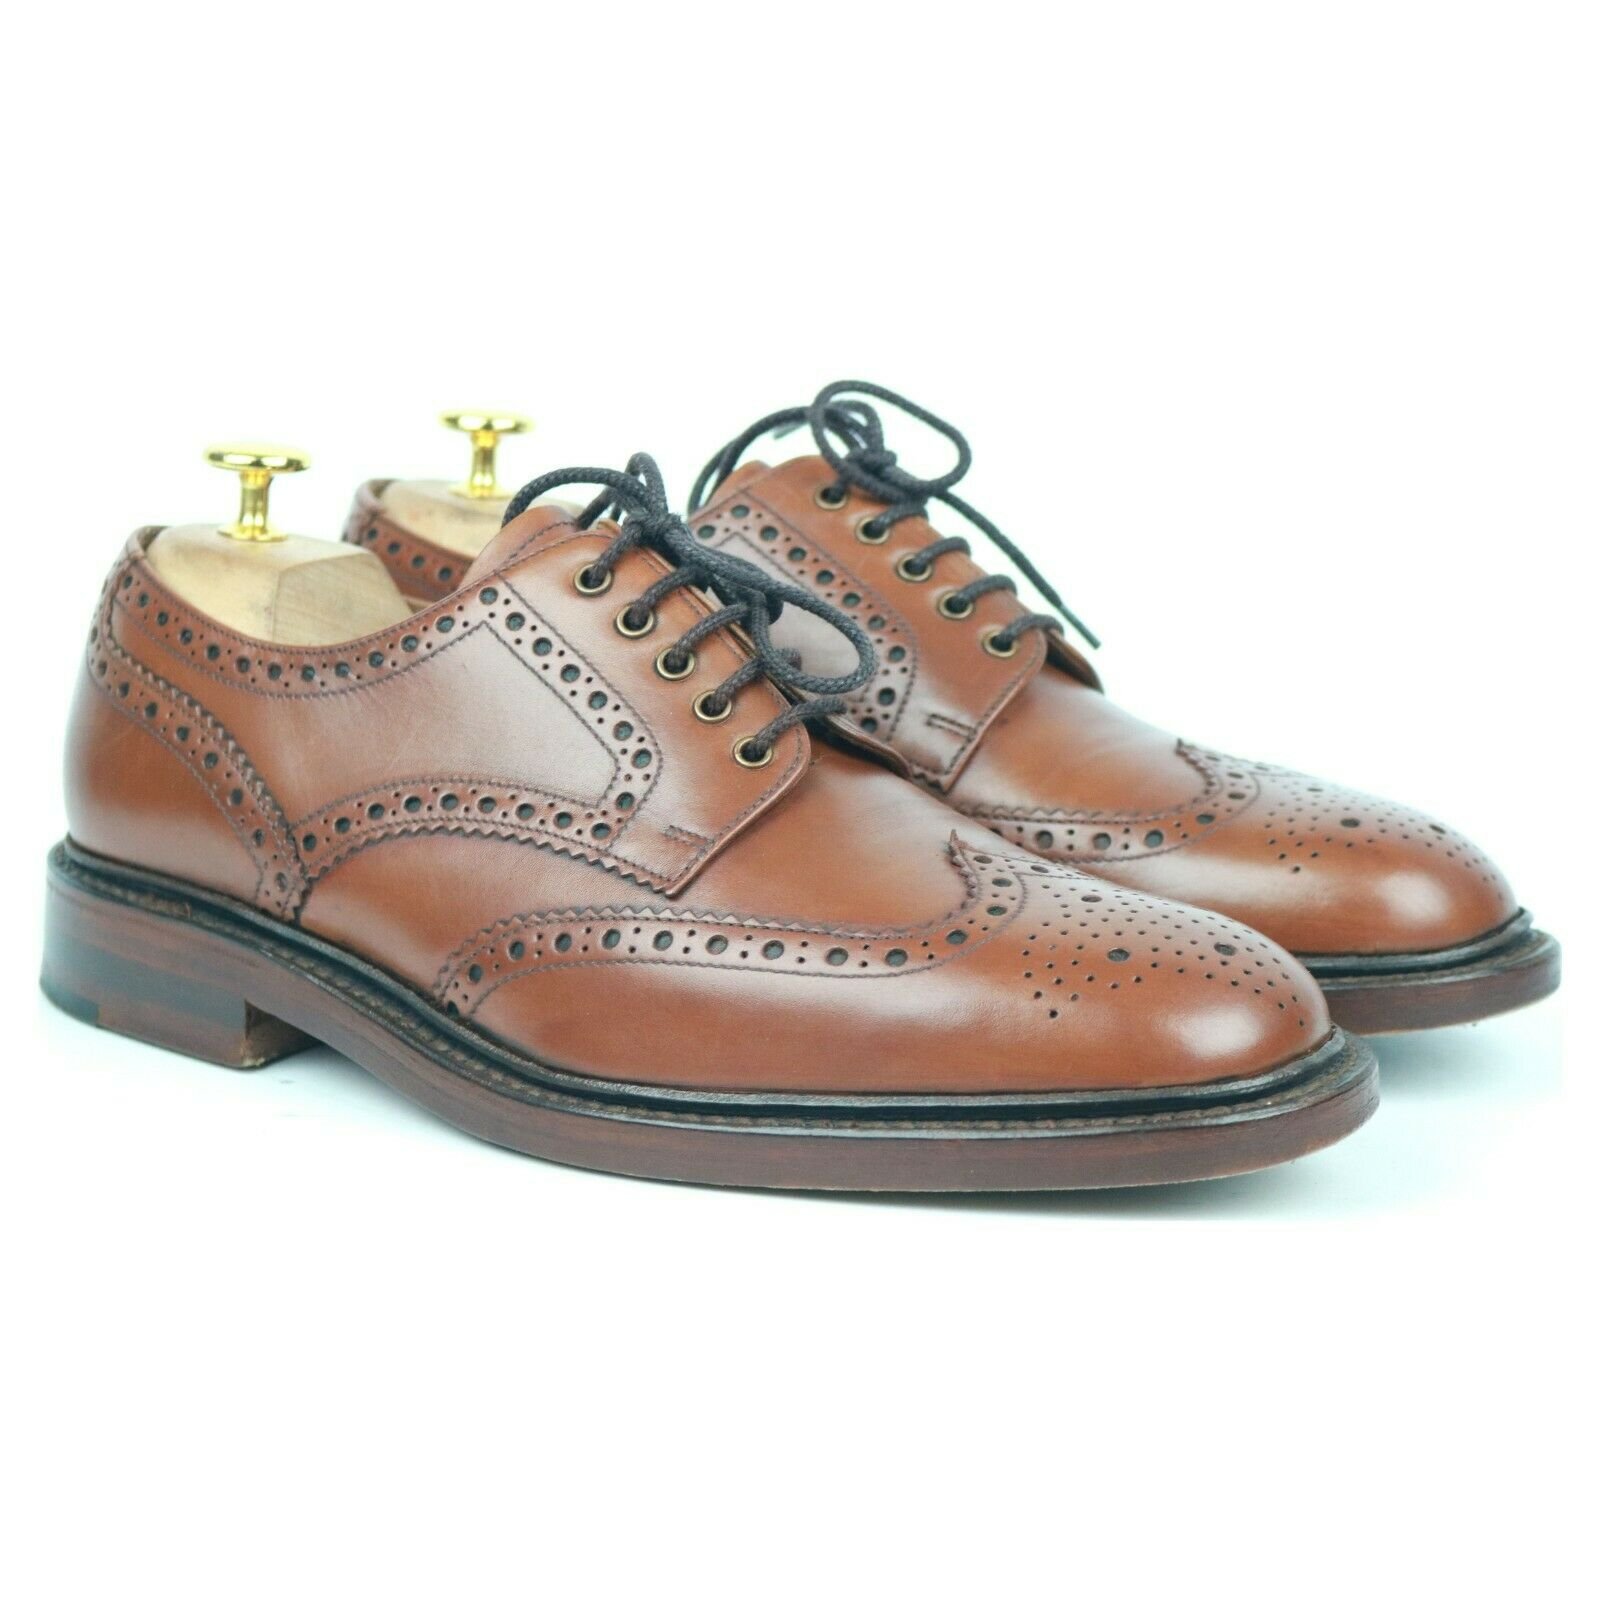 Loake 1880 'Chester' braun Leather Derby Brogues UK 7 F